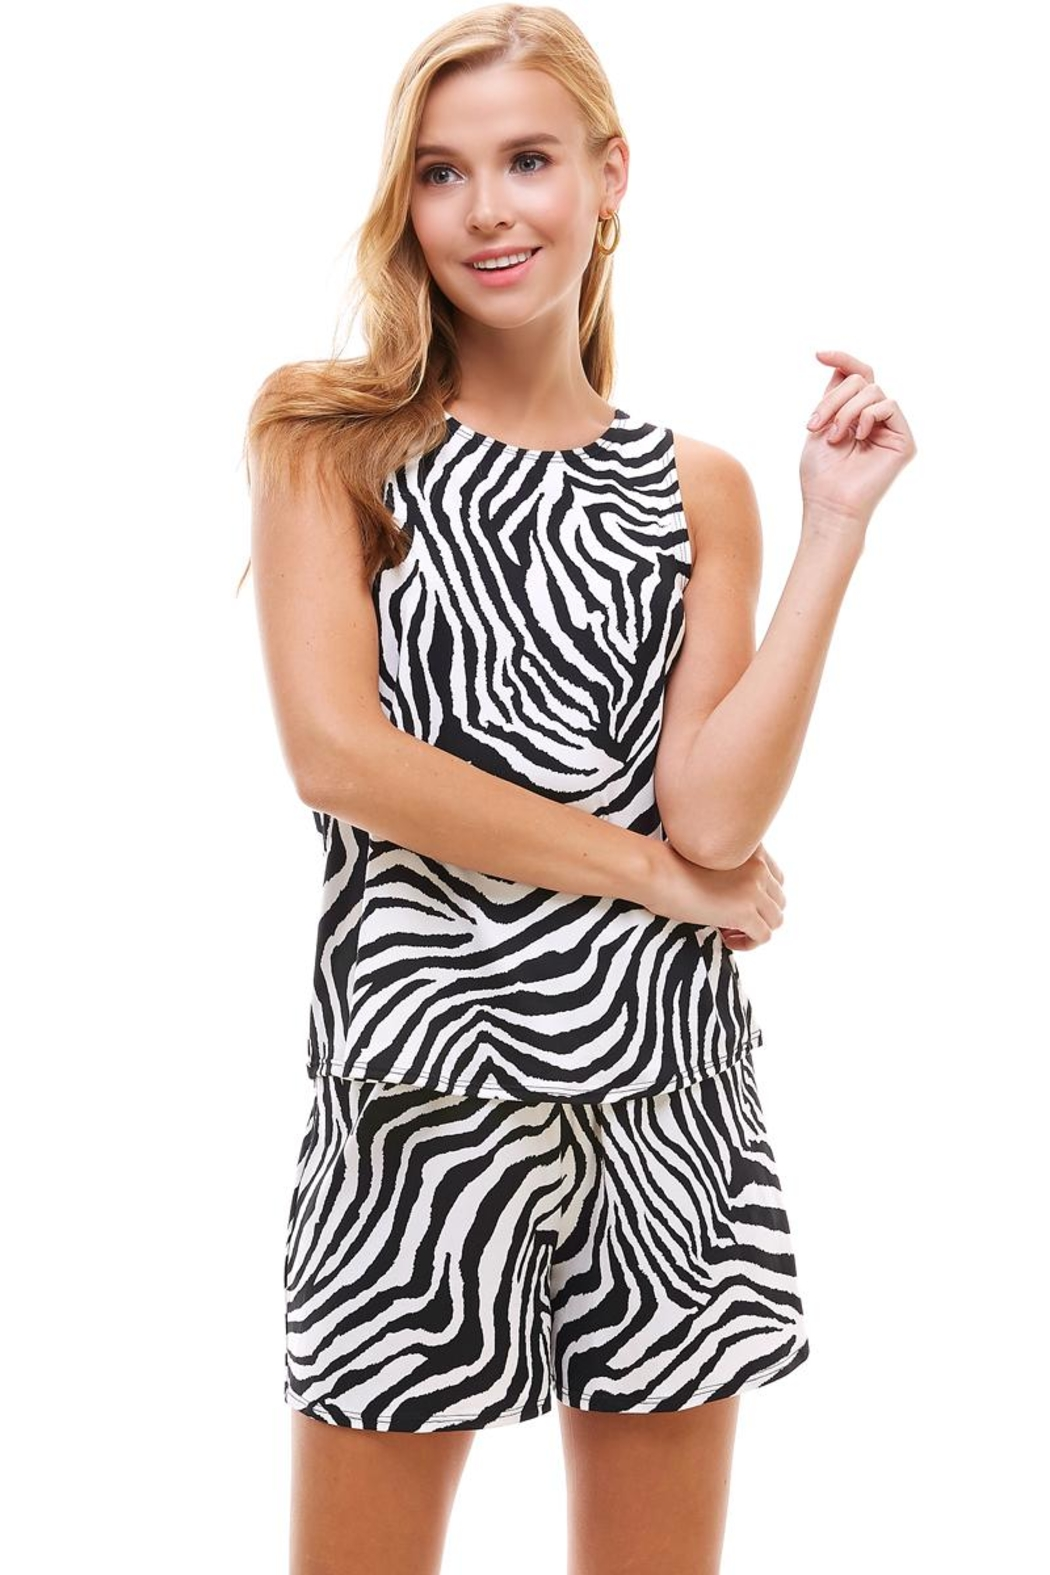 Miley and Molly Lounge Wear Set Zebra Leopard Animal Sleeveless Top And Short - Main Image